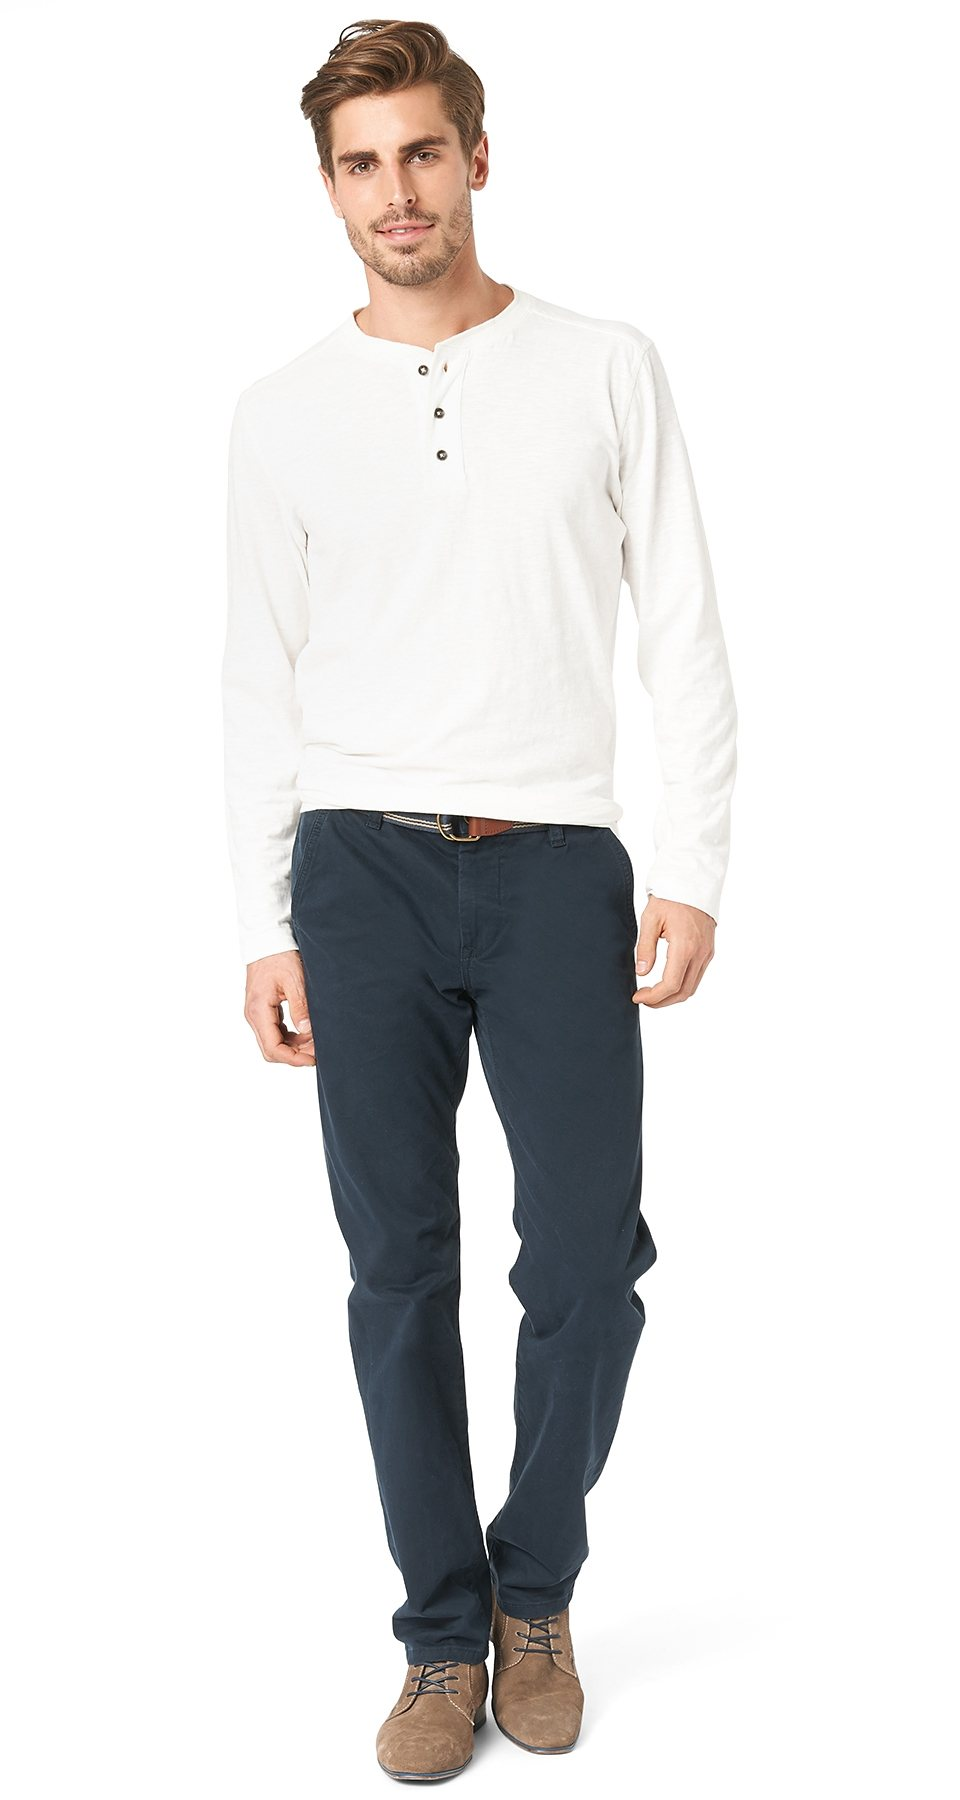 TOM TAILOR Hose »chino pants with belt«